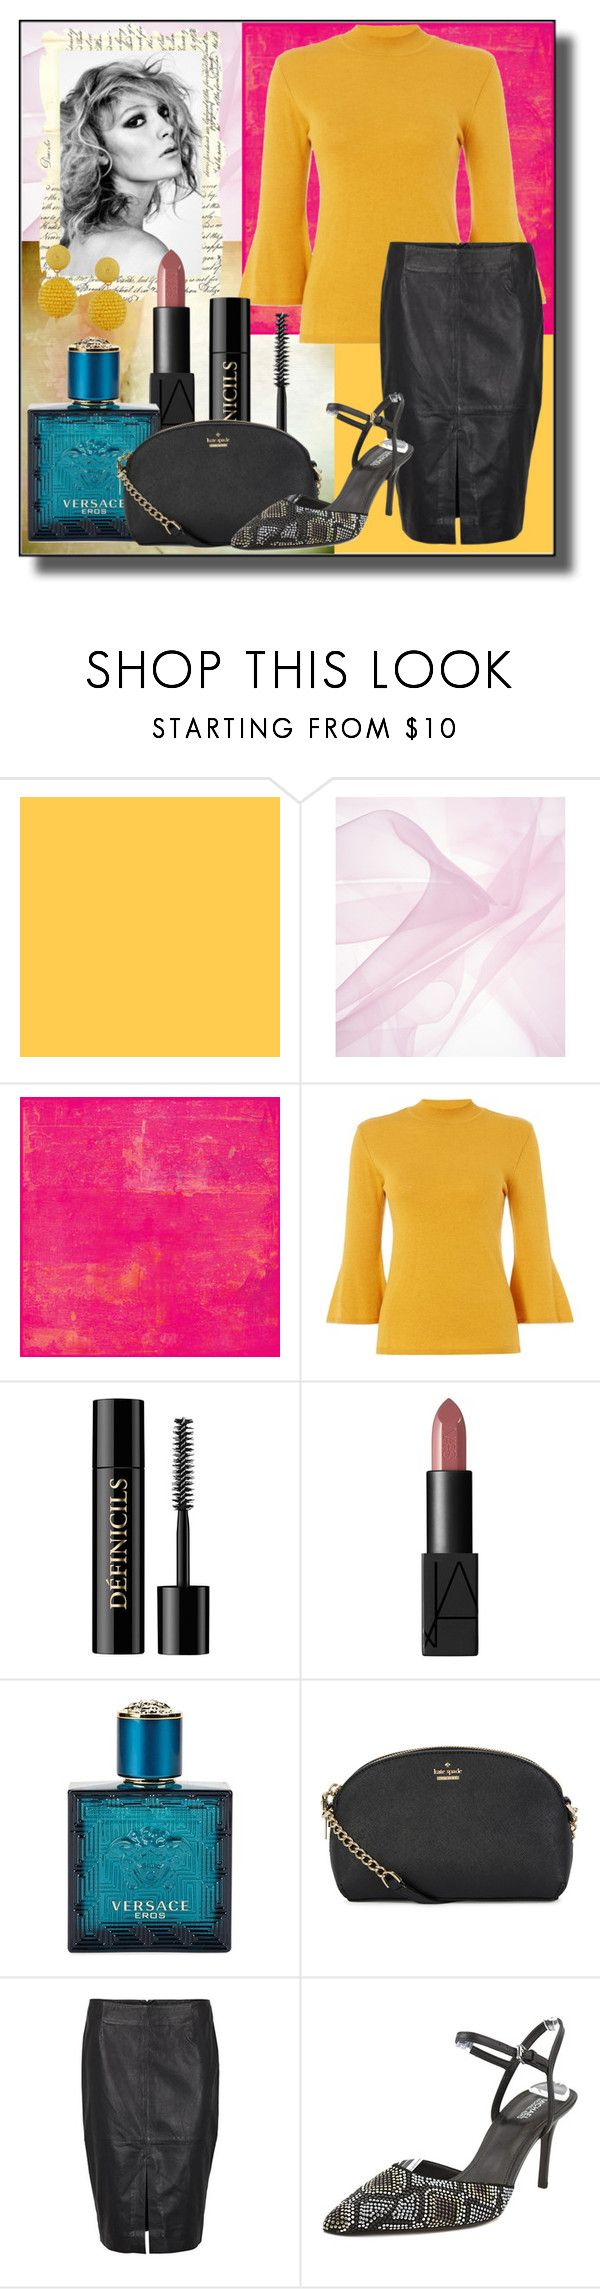 """Leather Skirt Style"" by veronica-h ❤ liked on Polyvore featuring Biba, Lancôme, Versace, Kate Spade, MICHAEL Michael Kors, Humble Chic, Leather, Heels, bag and jumper"